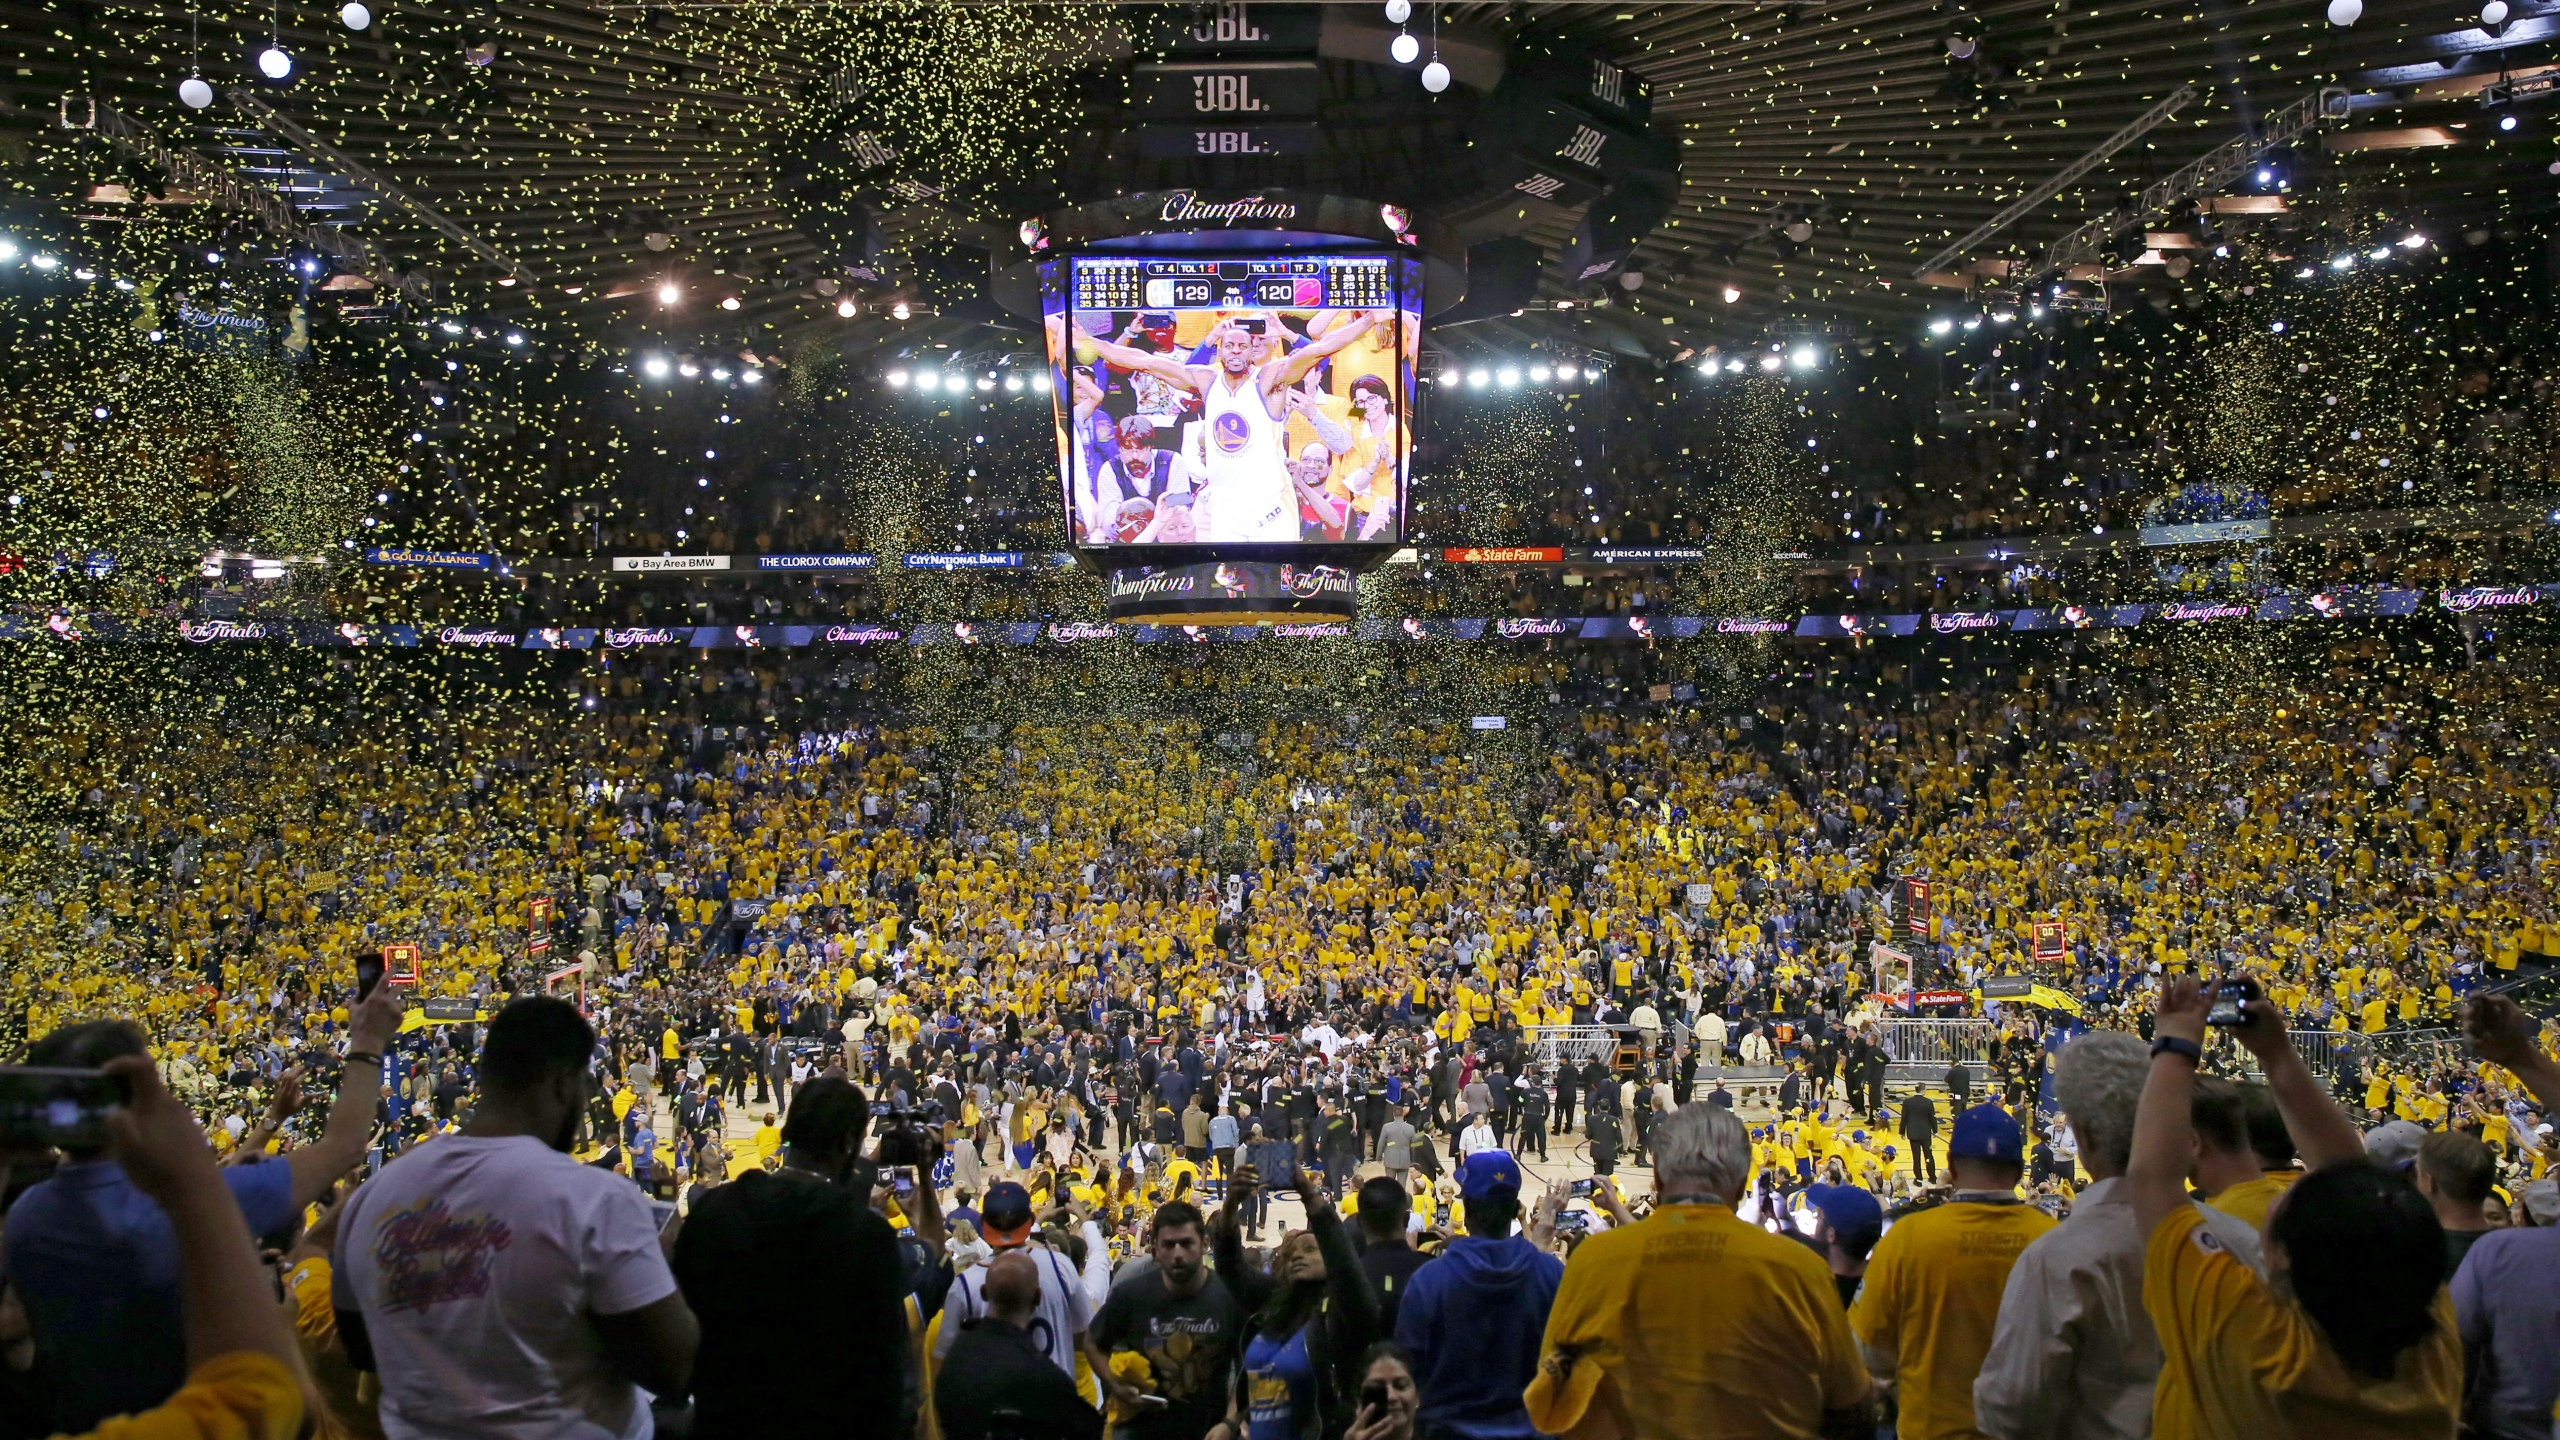 Fans cheer as the Golden State Warriors celebrate after defeating the Cleveland Cavaliers 129-120 in Game 5 to win the 2017 NBA Finals at ORACLE Arena on June 12, 2017, in Oakland, California. ( Ezra Shaw/Getty Images)